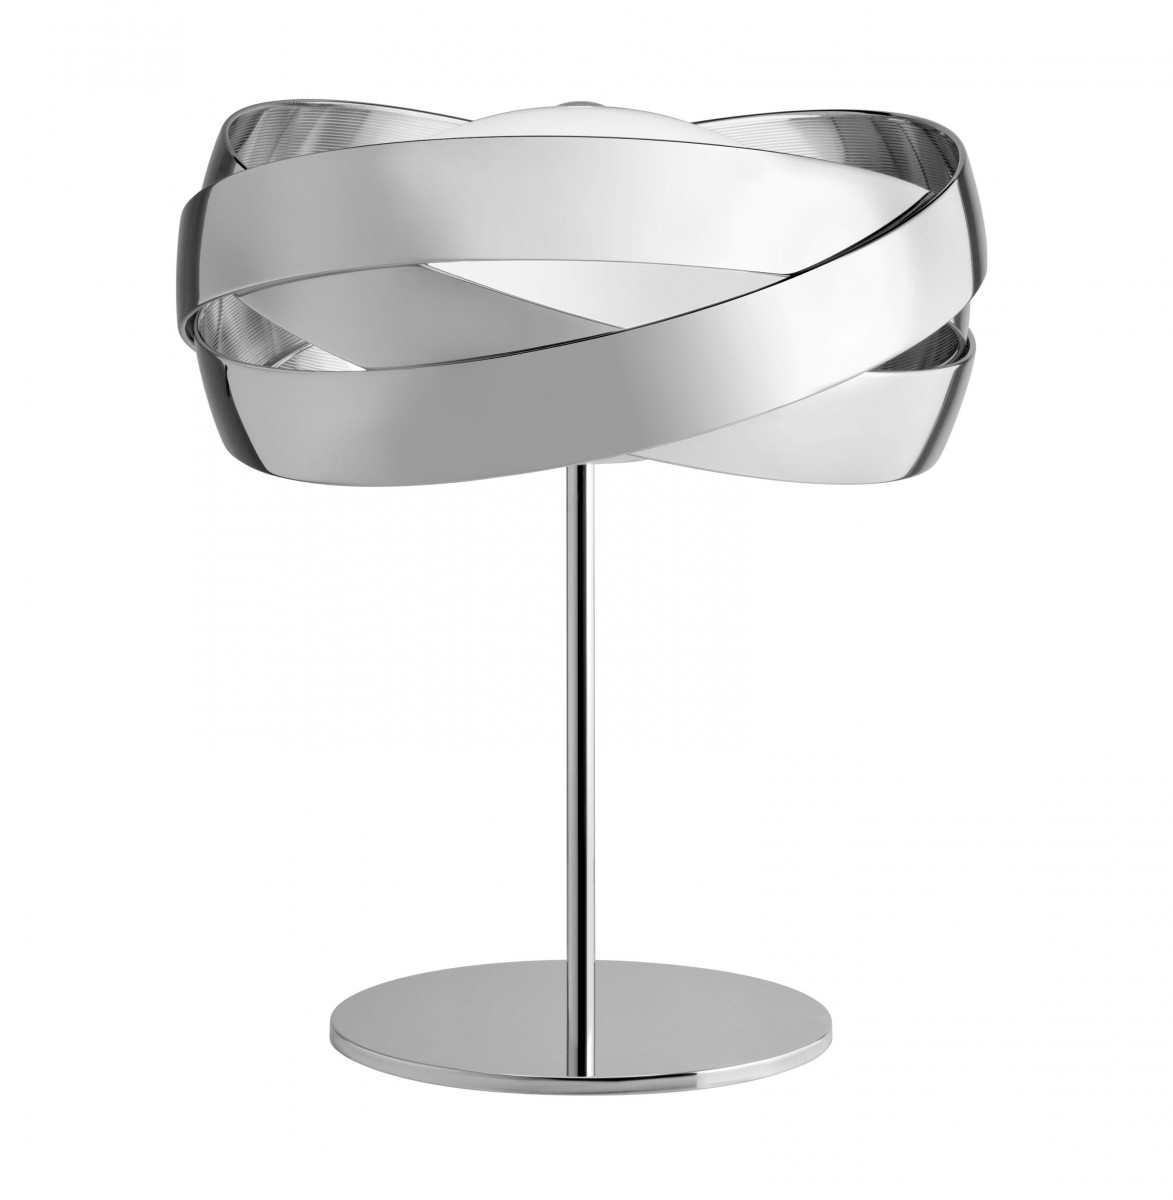 Siso M 2997 Lampe de table Chrome